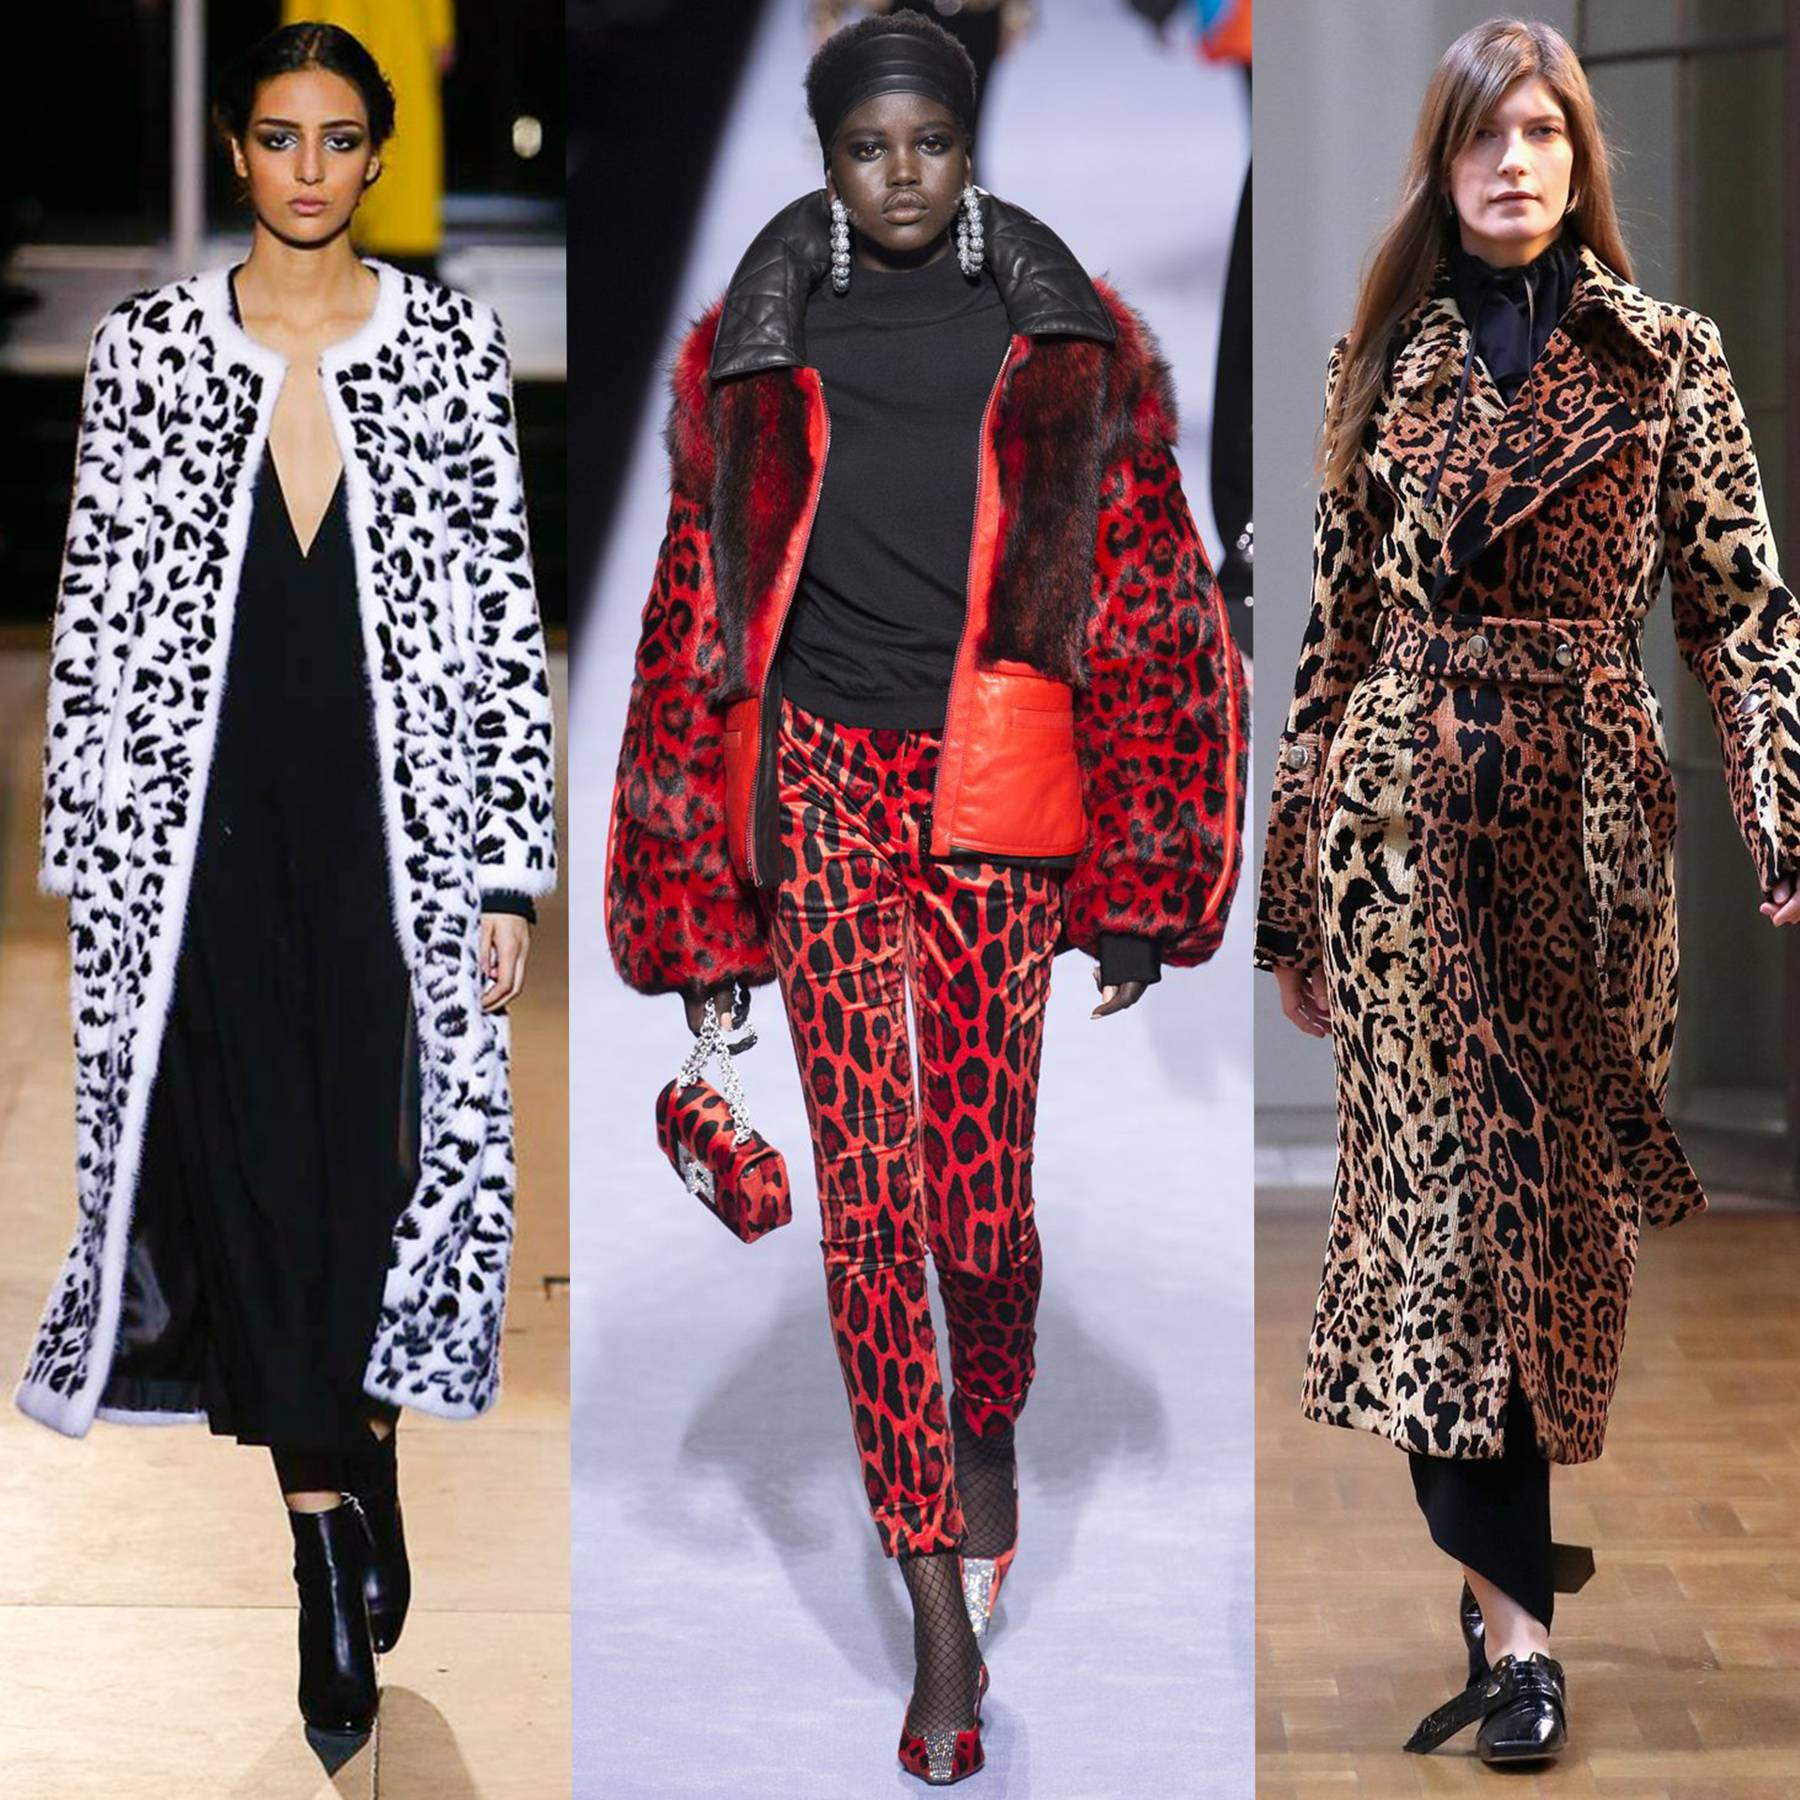 2c488579f6c5 Autumn/Winter 2018 Trend: Animal Print | British Vogue